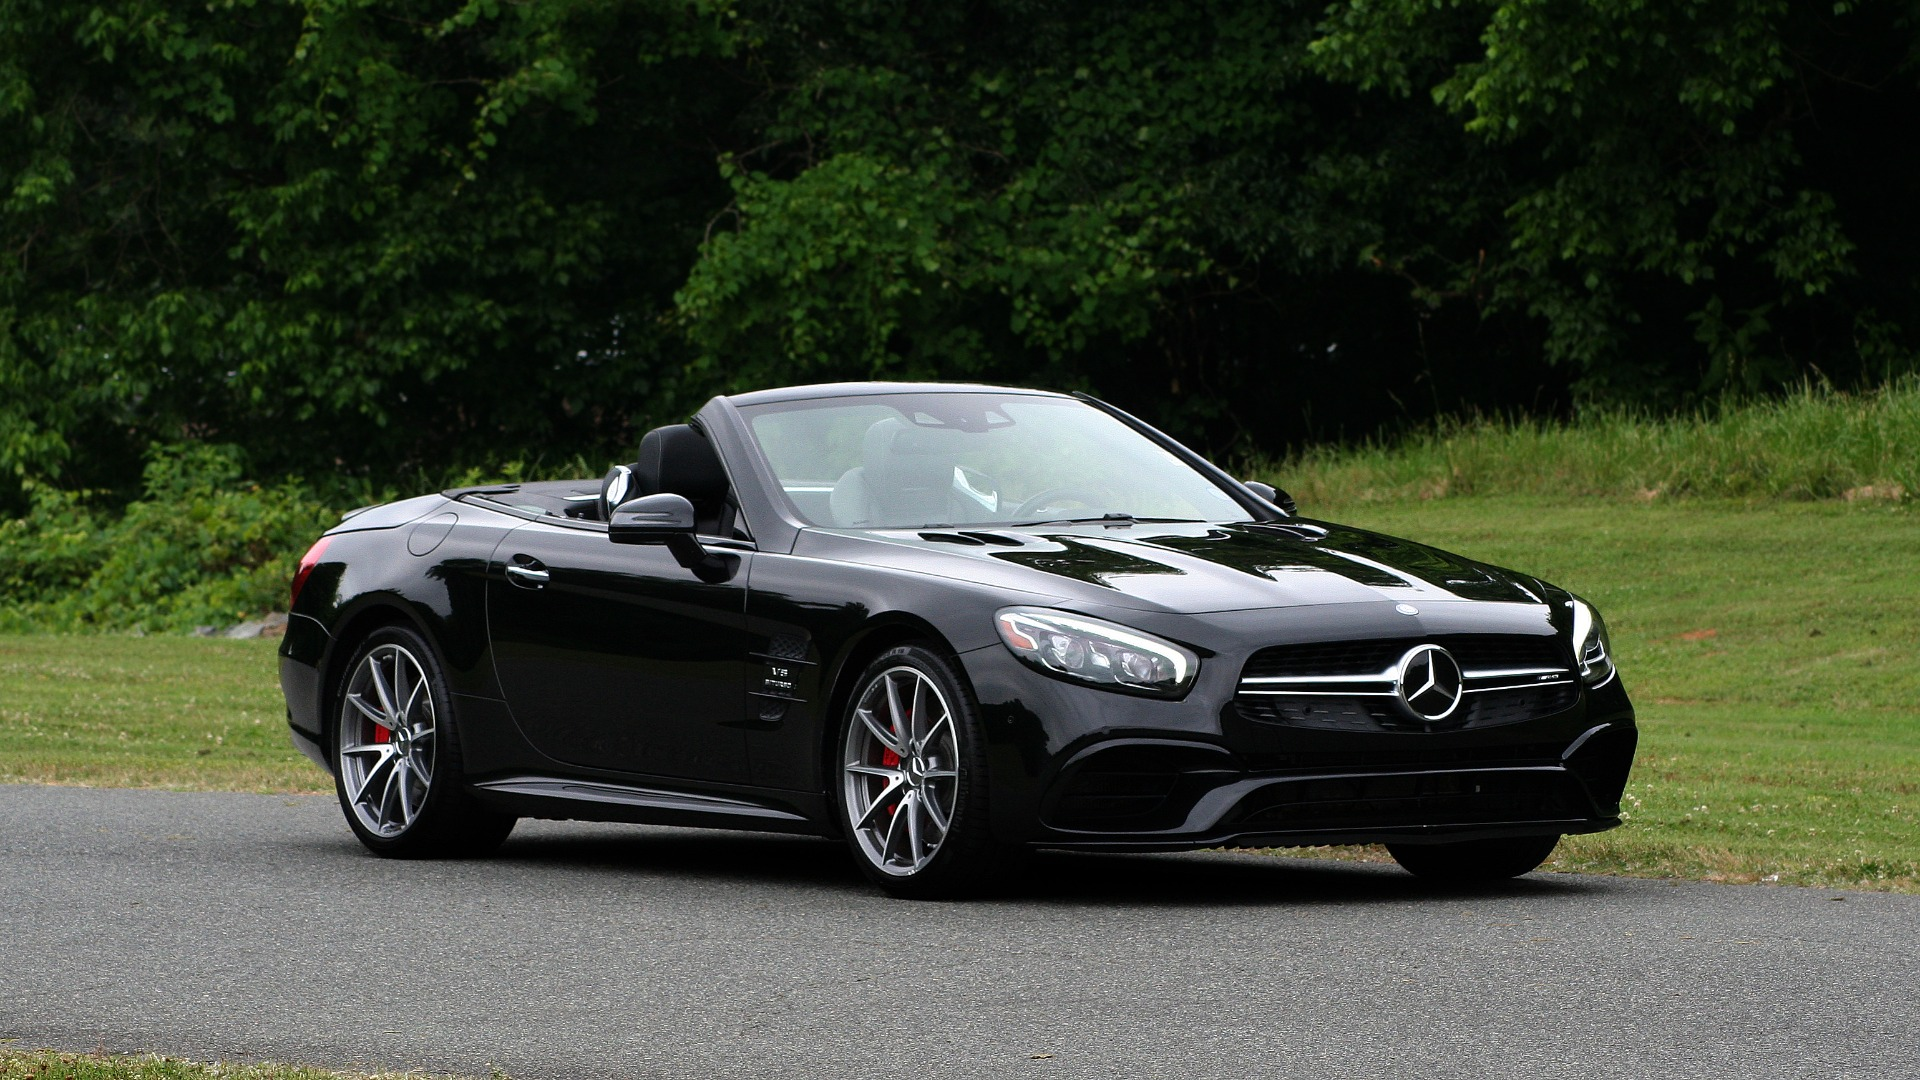 Used 2017 Mercedes-Benz SL 63 AMG / ROADSTER / DRIVER ASSIST / NAV / CAMERA for sale Sold at Formula Imports in Charlotte NC 28227 11